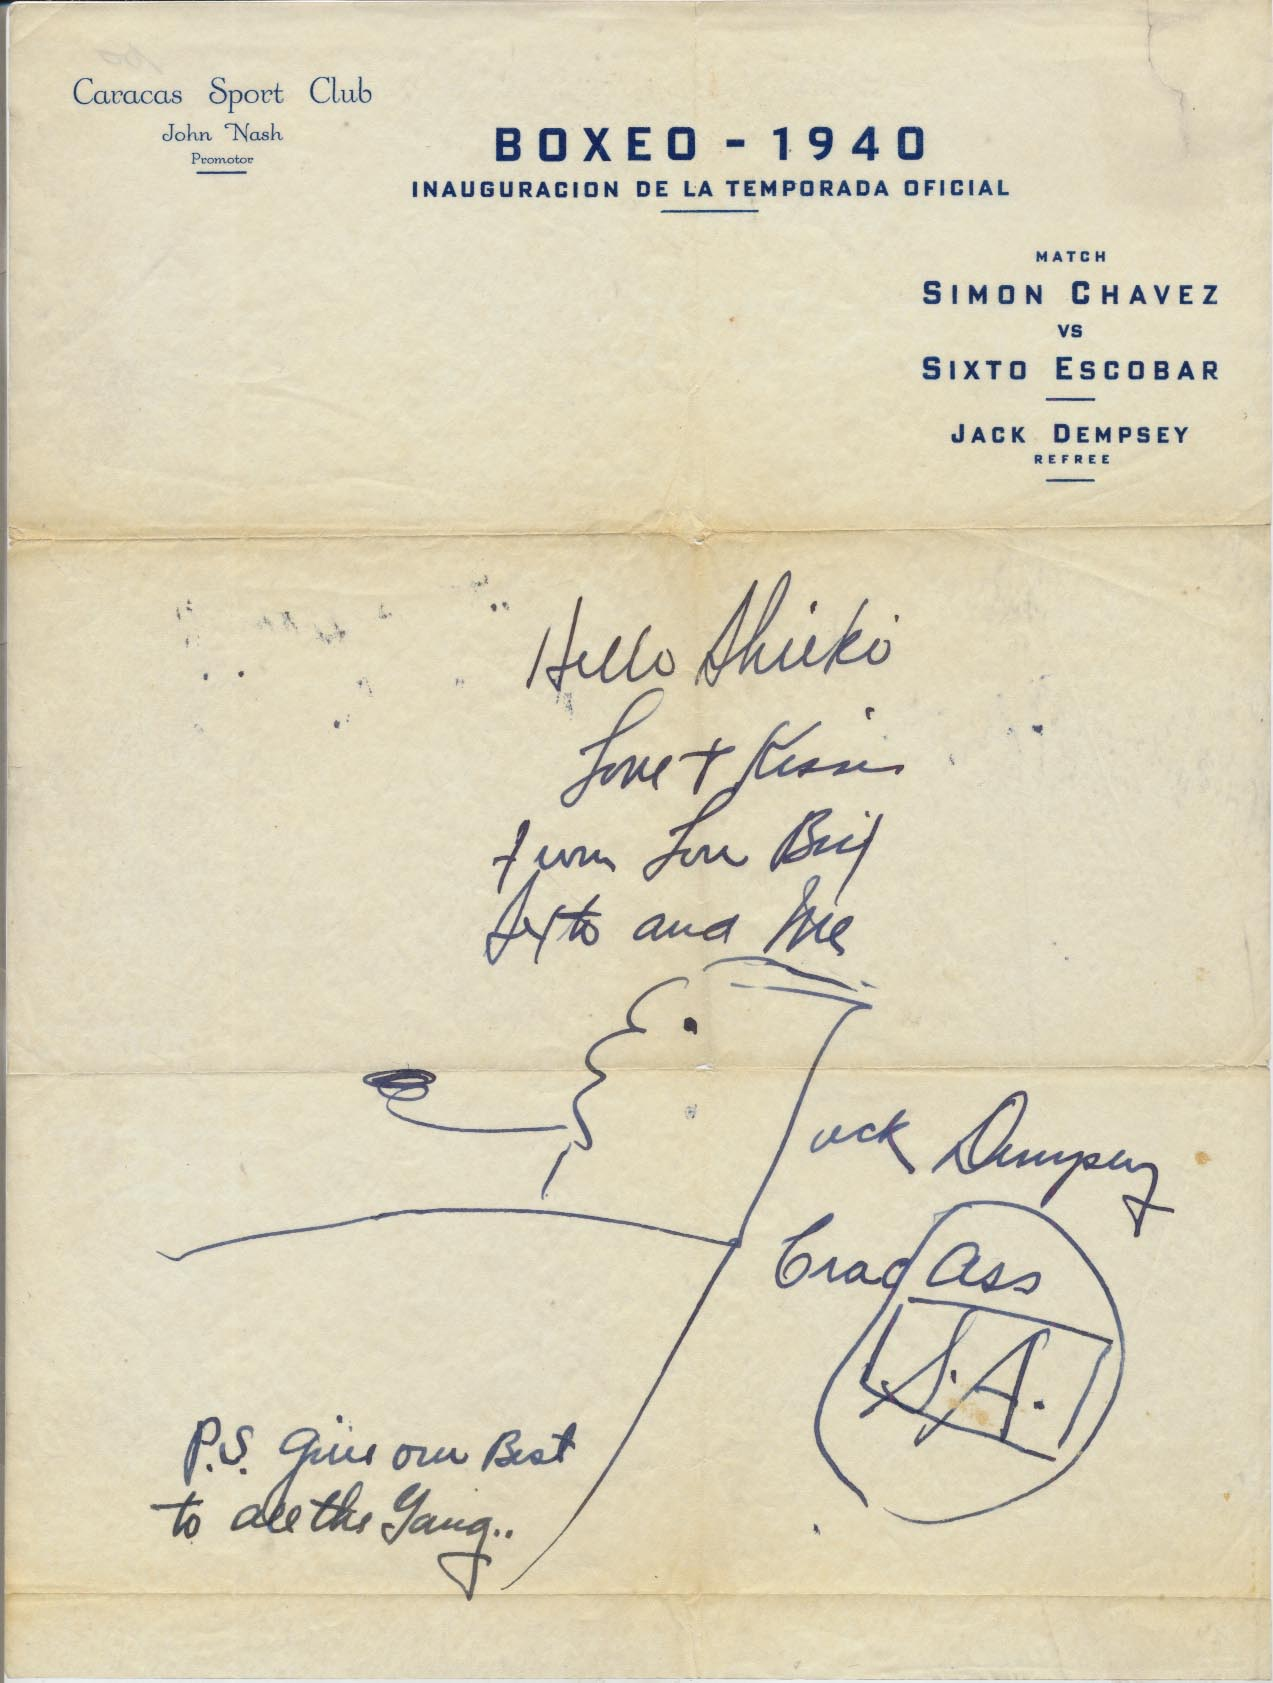 Lot #1033  Letter  Dempsey, Jack (1940, world class) Cond: 9.5